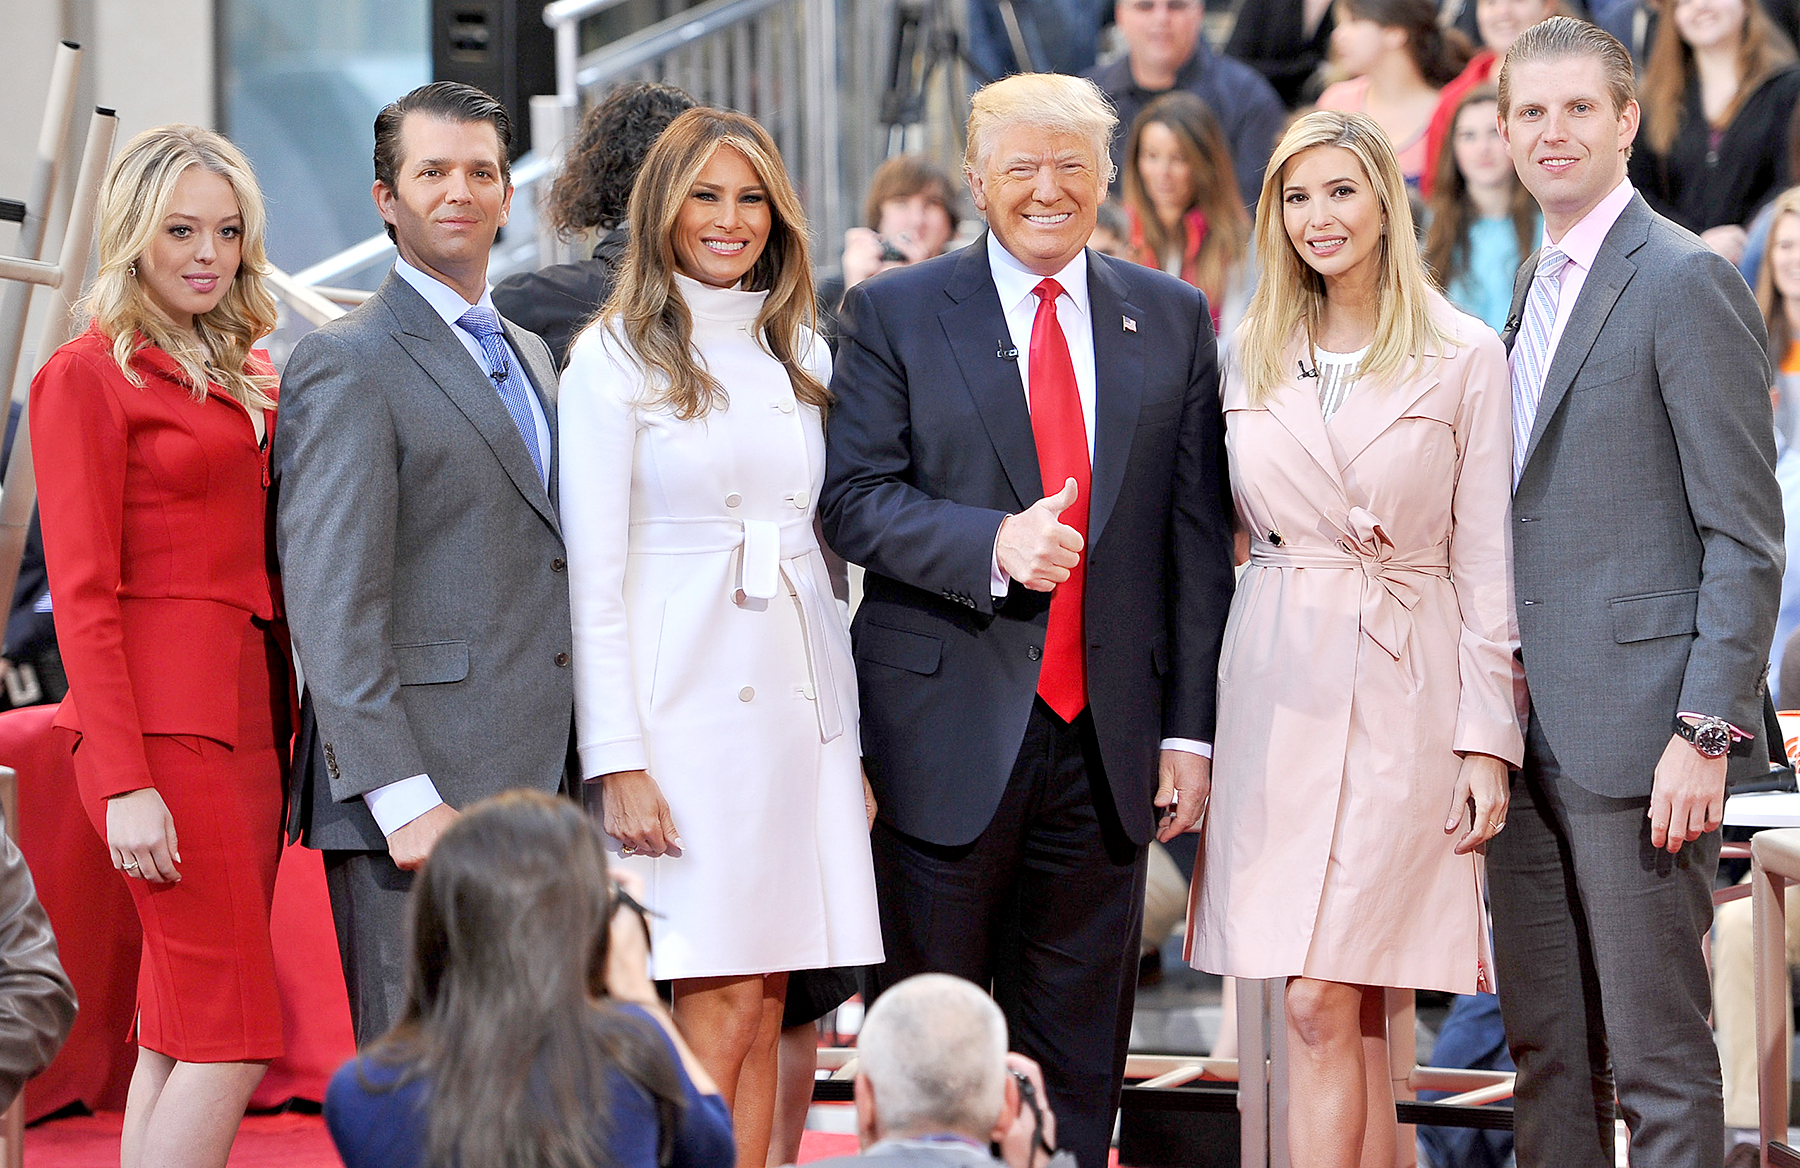 Tiffany Trump, Eric Trump, Melania Trump, Donald Trump, Ivanka Trump, and Donald Trump, Jr. attend NBC's Today Trump Town Hall at Rockefeller Plaza on April 21, 2016 in New York City.